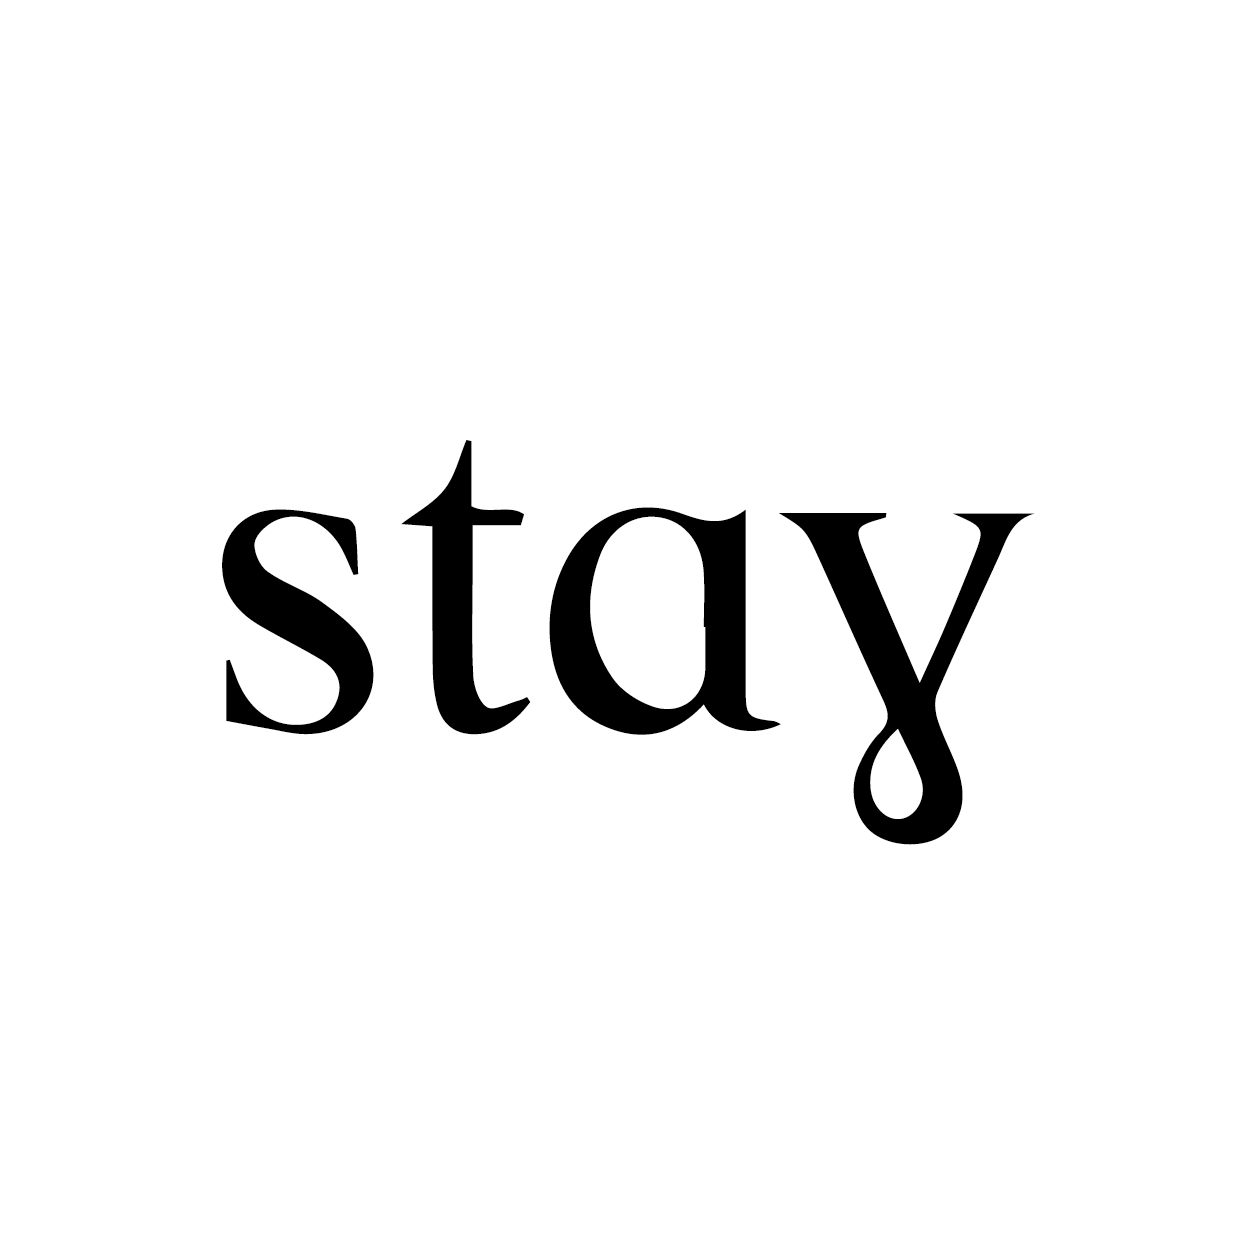 stay-01.png